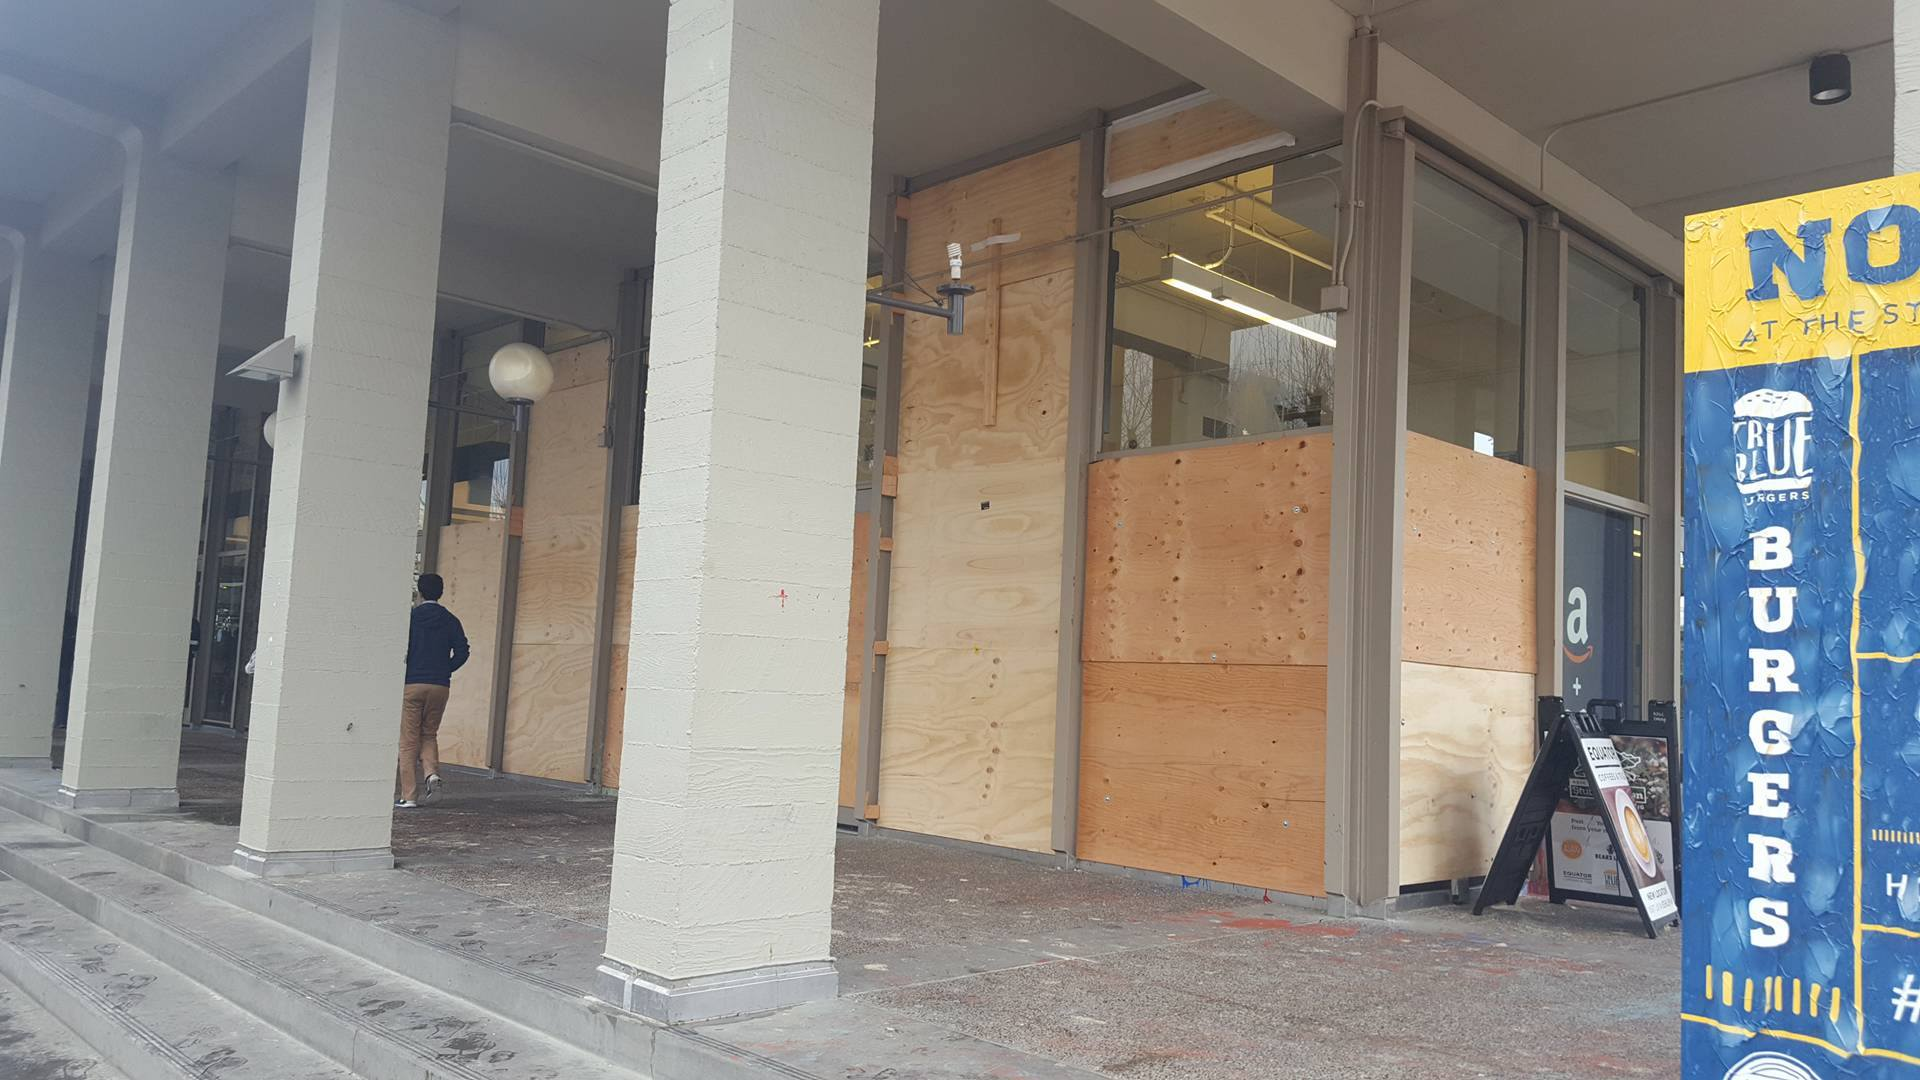 Black bloc anarchists broke the glass windows of the MLK Jr. building during the protest on Feb. 2, and damaged other nearby properties. Many protestors argued that Milo Yiannopoulos would give